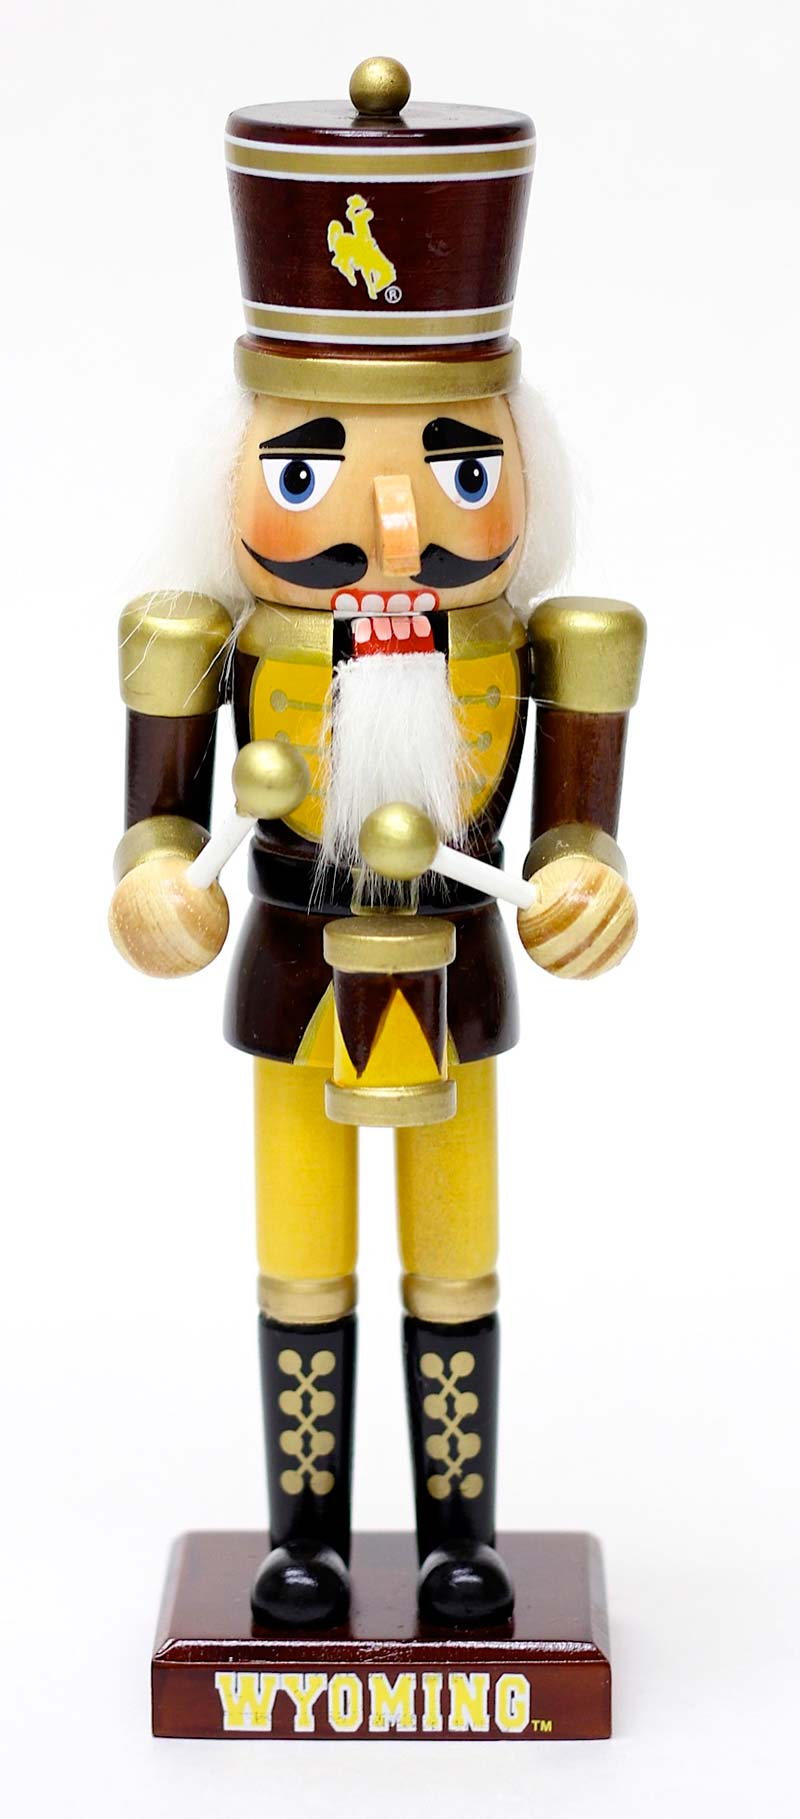 Spirit Products® Wooden Drummer Wyoming Nutcracker (SKU 132997671345)